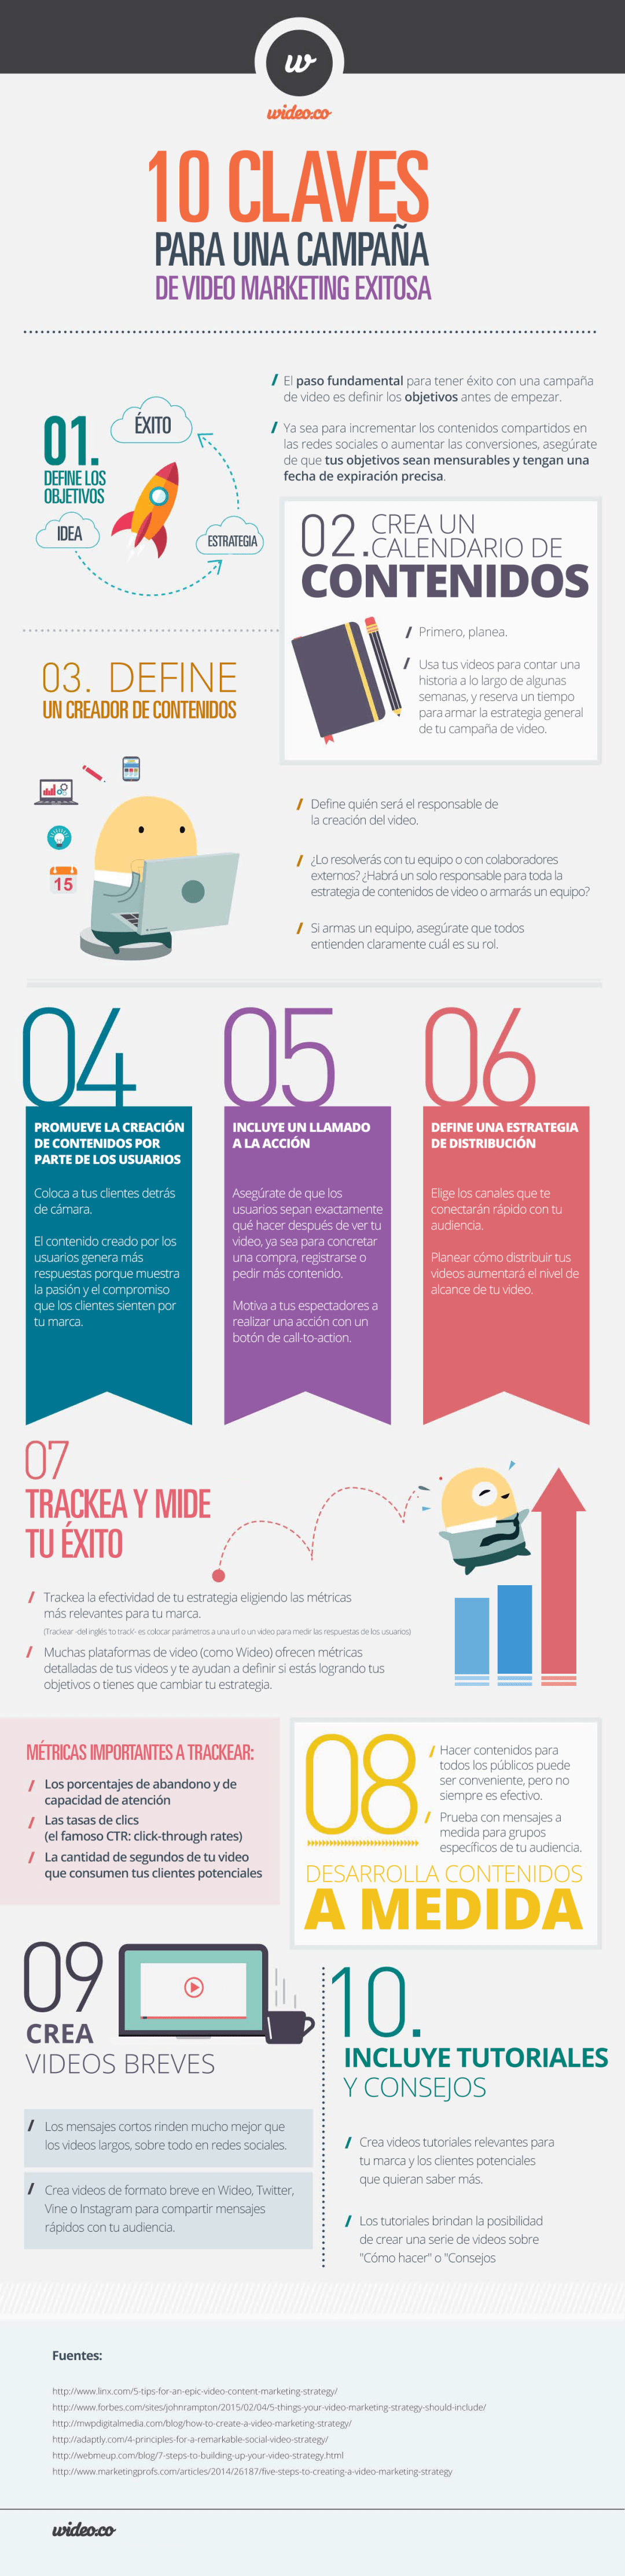 10 claves para una campaña de video marketing exitosa